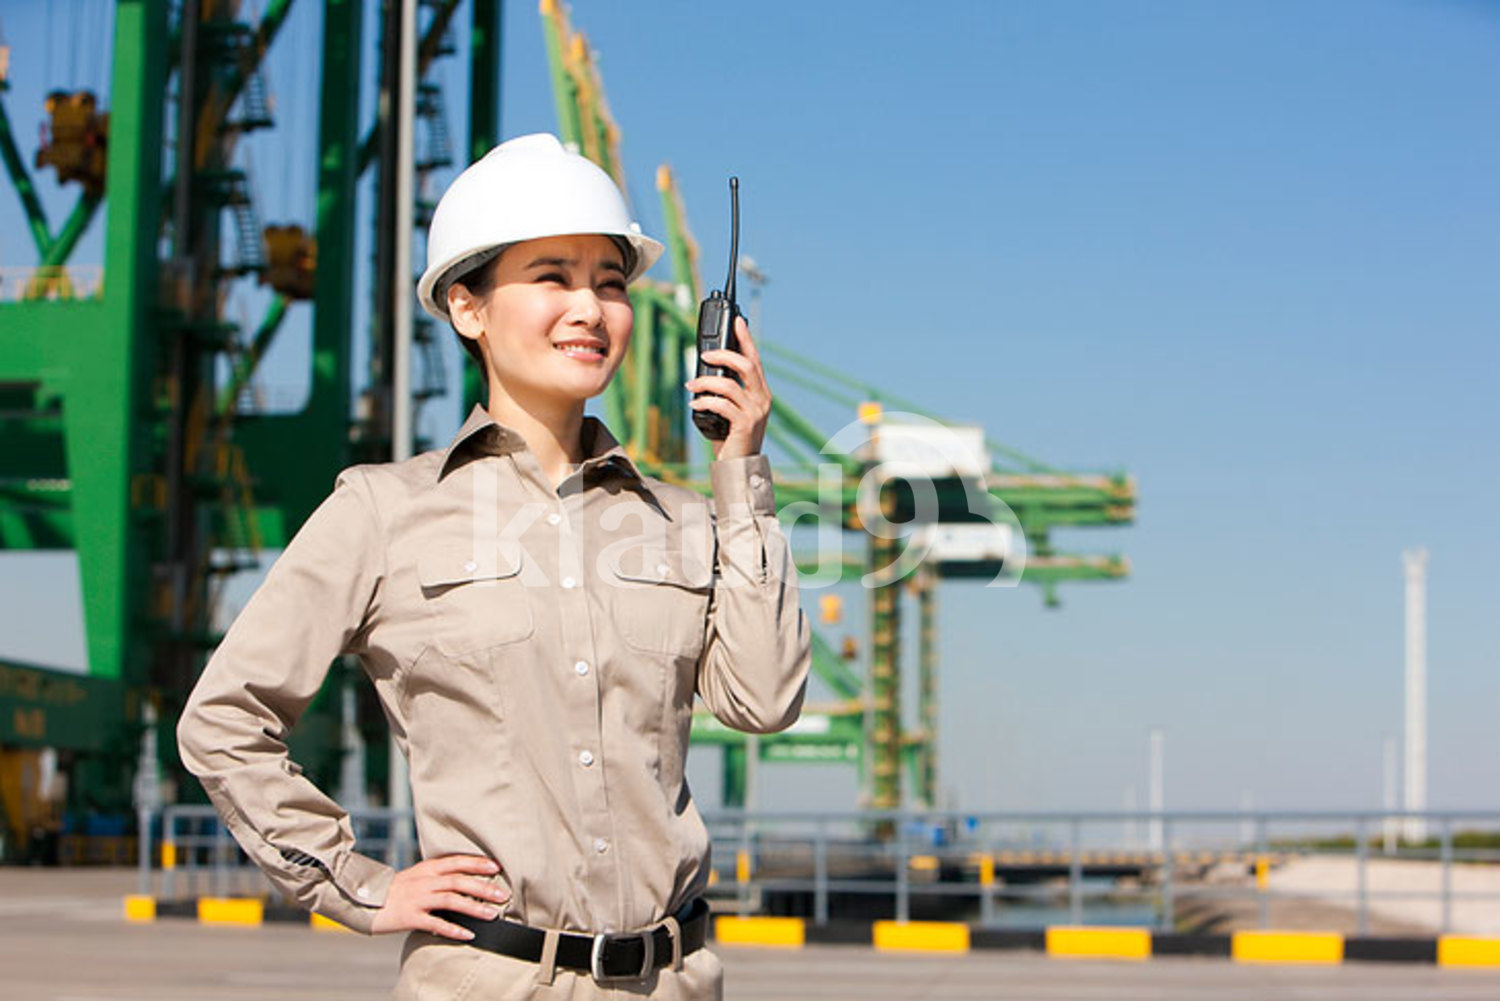 Female Chinese shipping industry worker with walkie-talkie